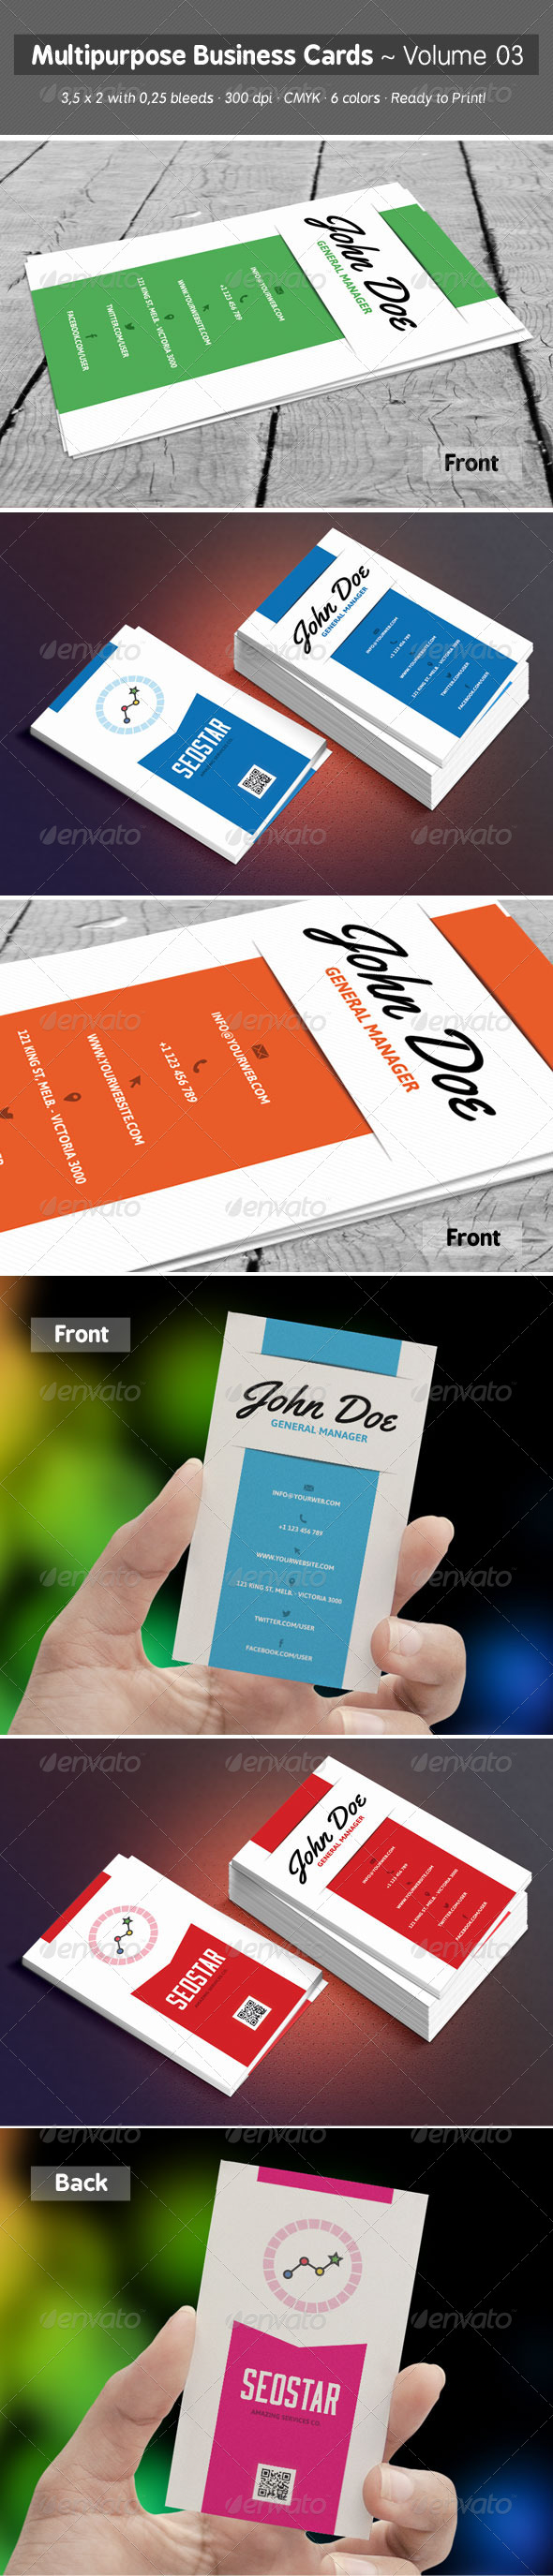 Multipurpose Business Cards Volume 03